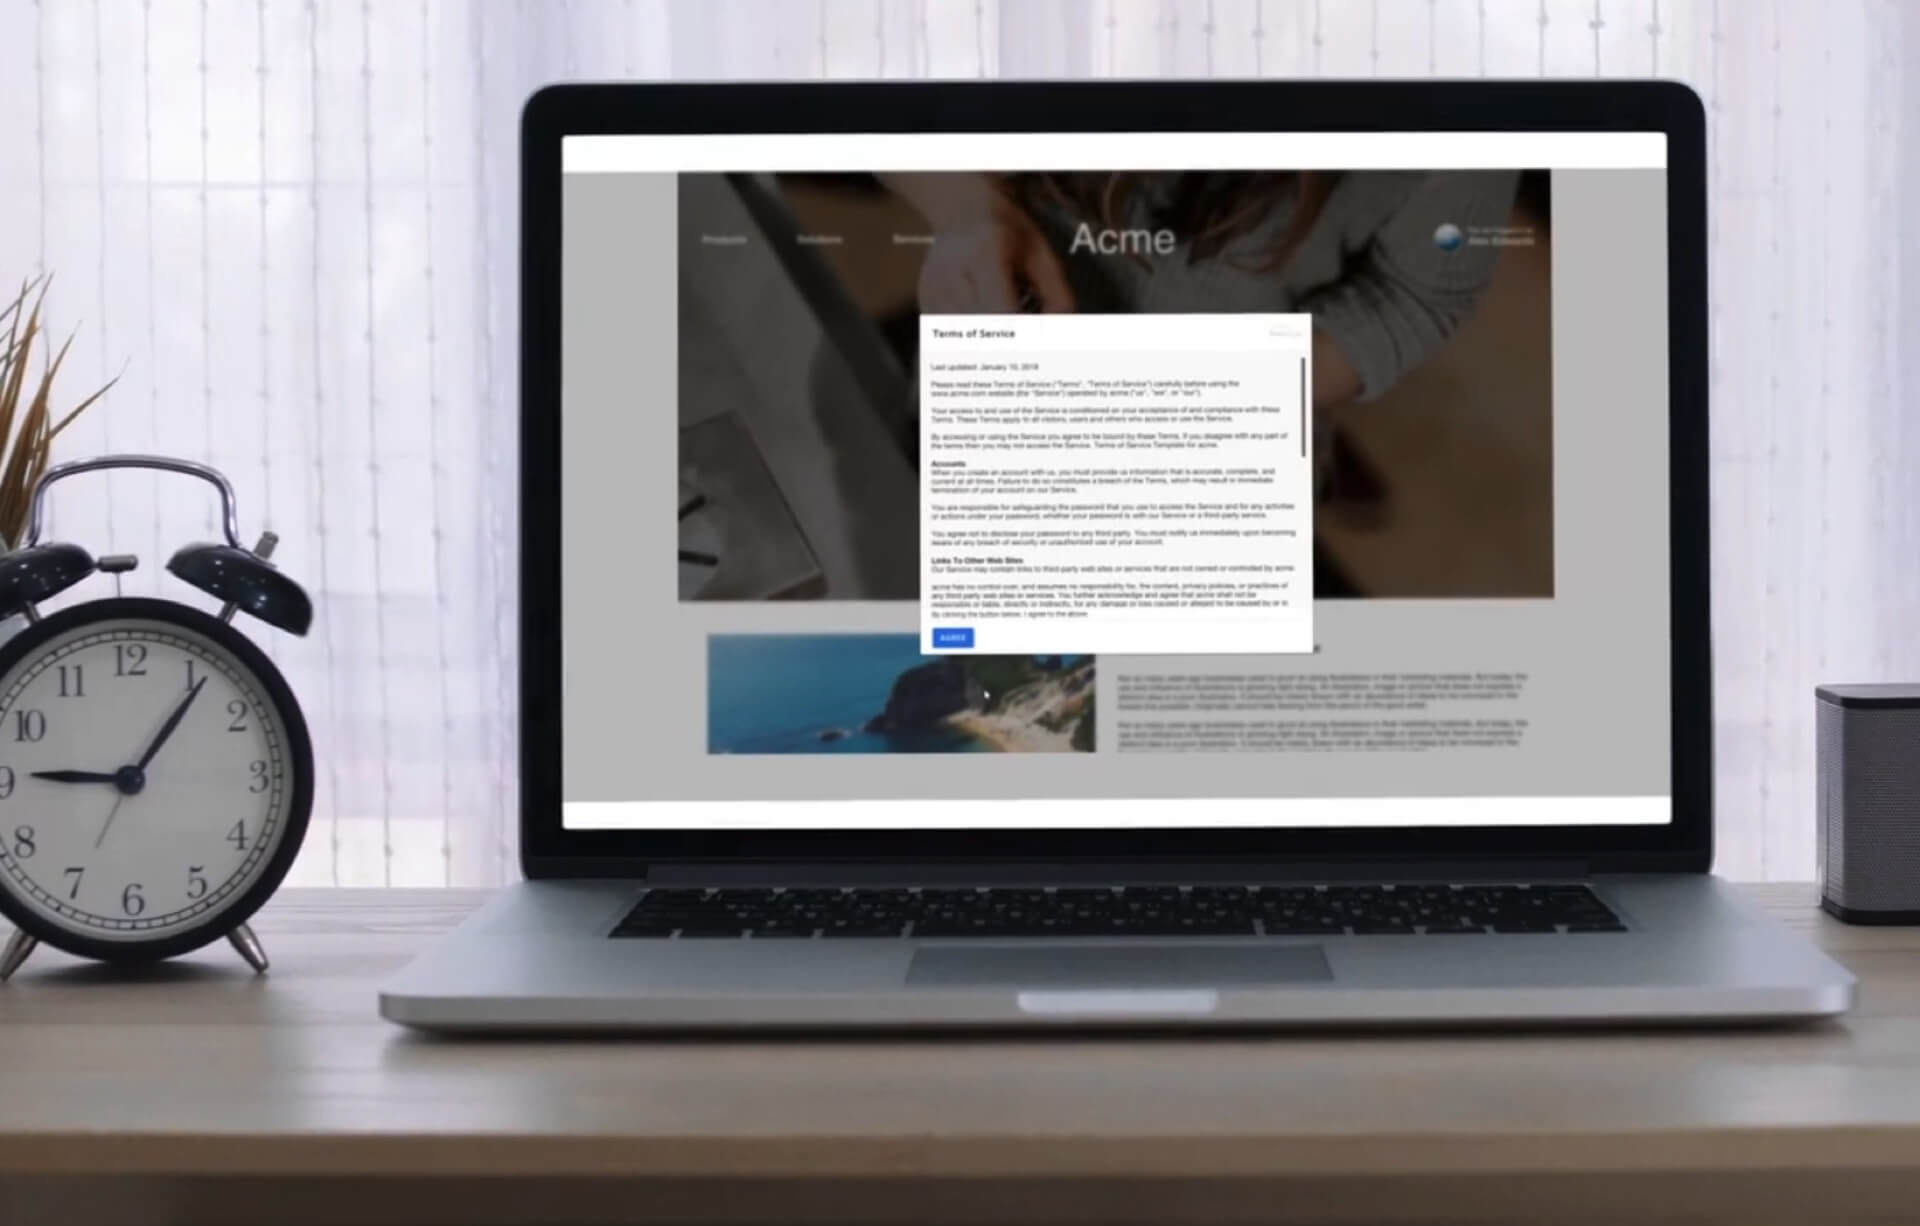 A terms of service agreement in a lightbox within a web browser.